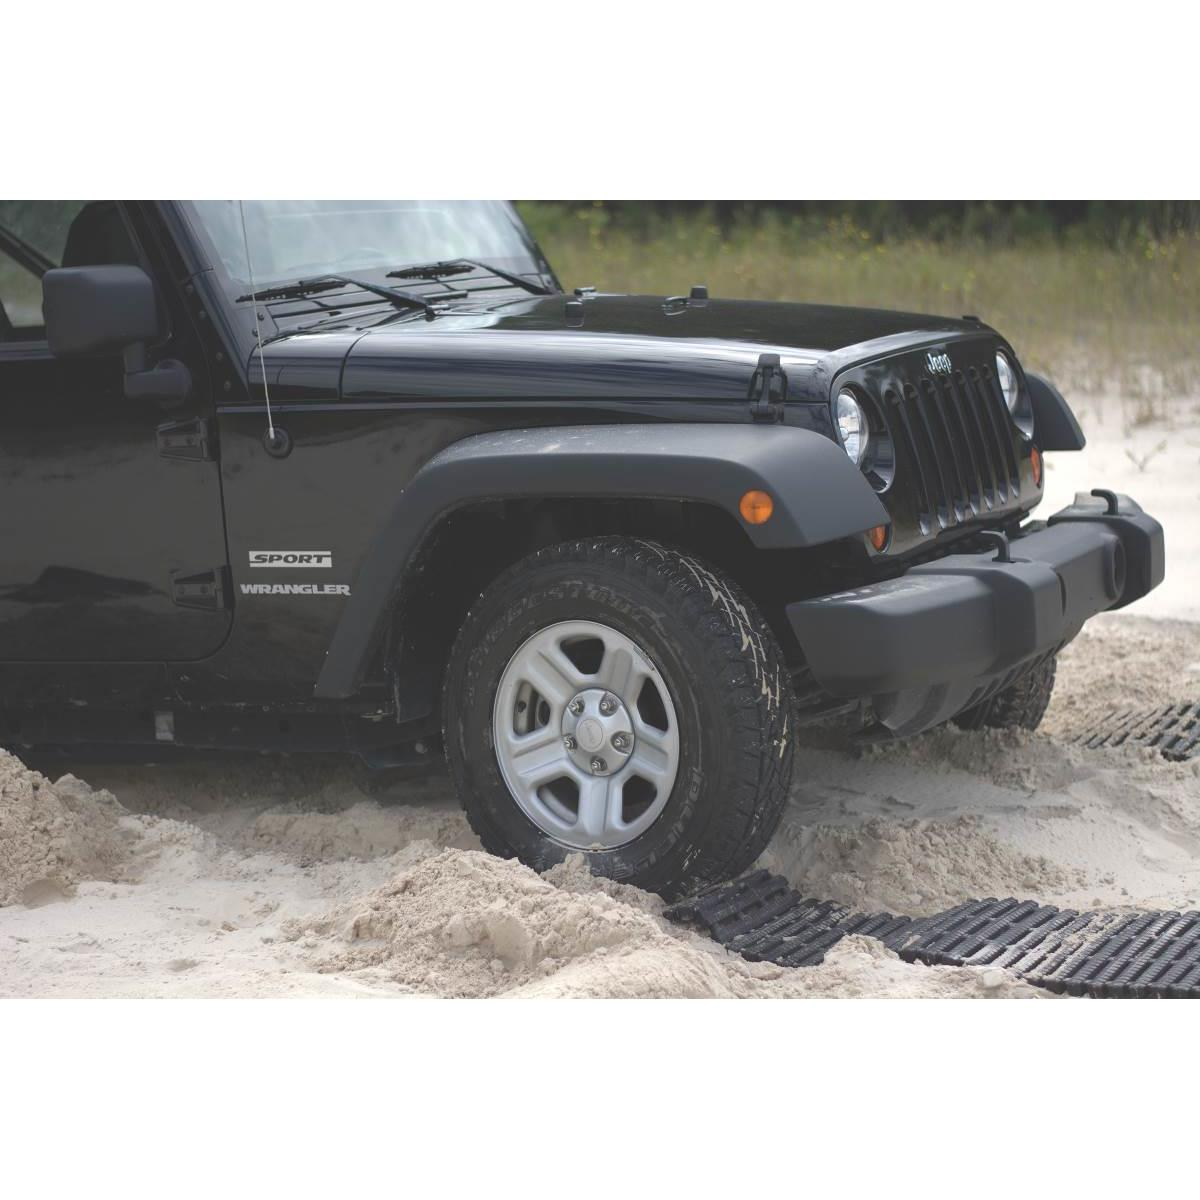 Gator Track Traction Mat